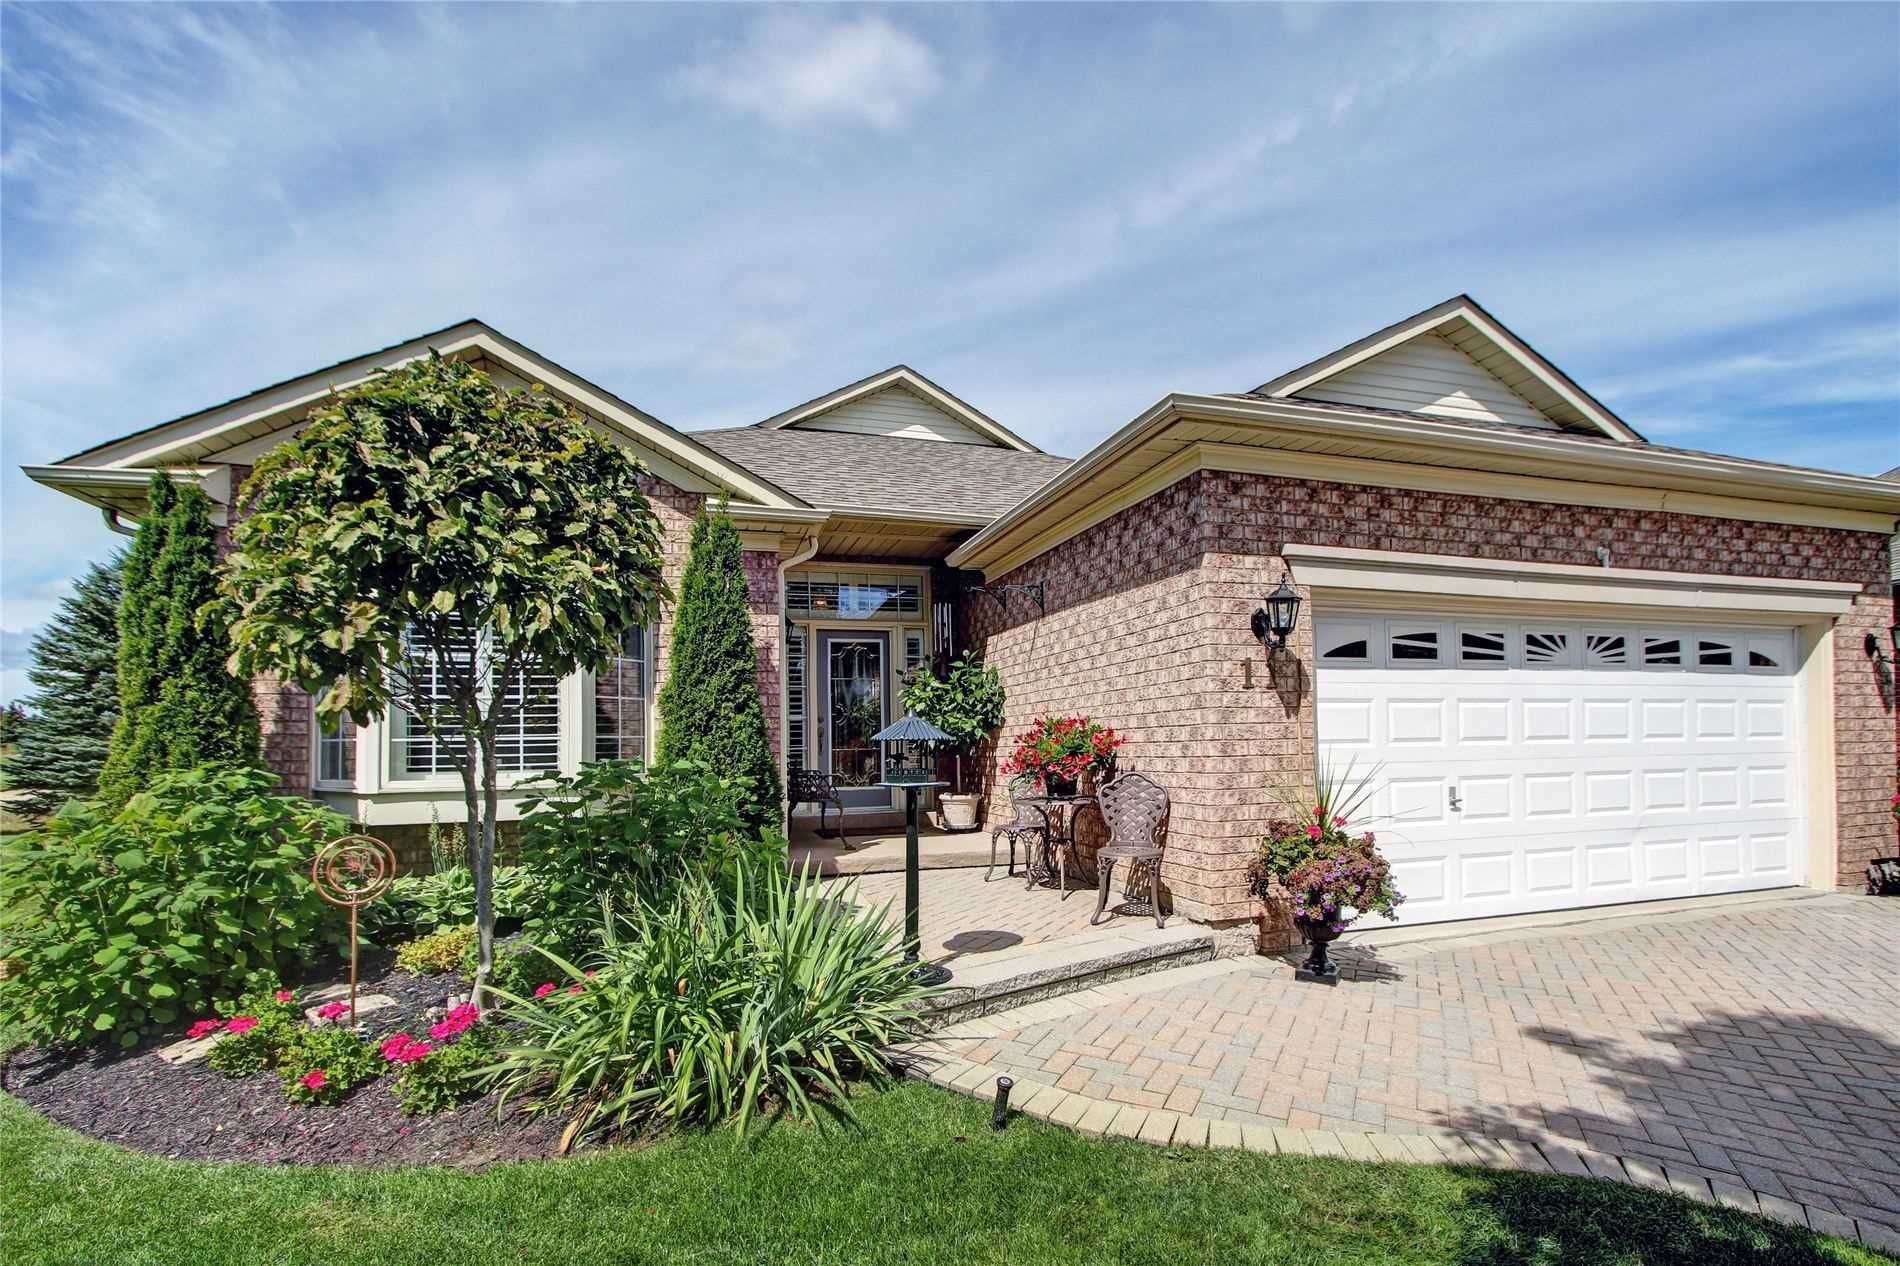 Main Photo: 11 Jack's Round in Whitchurch-Stouffville: Freehold for sale : MLS®# N4563404